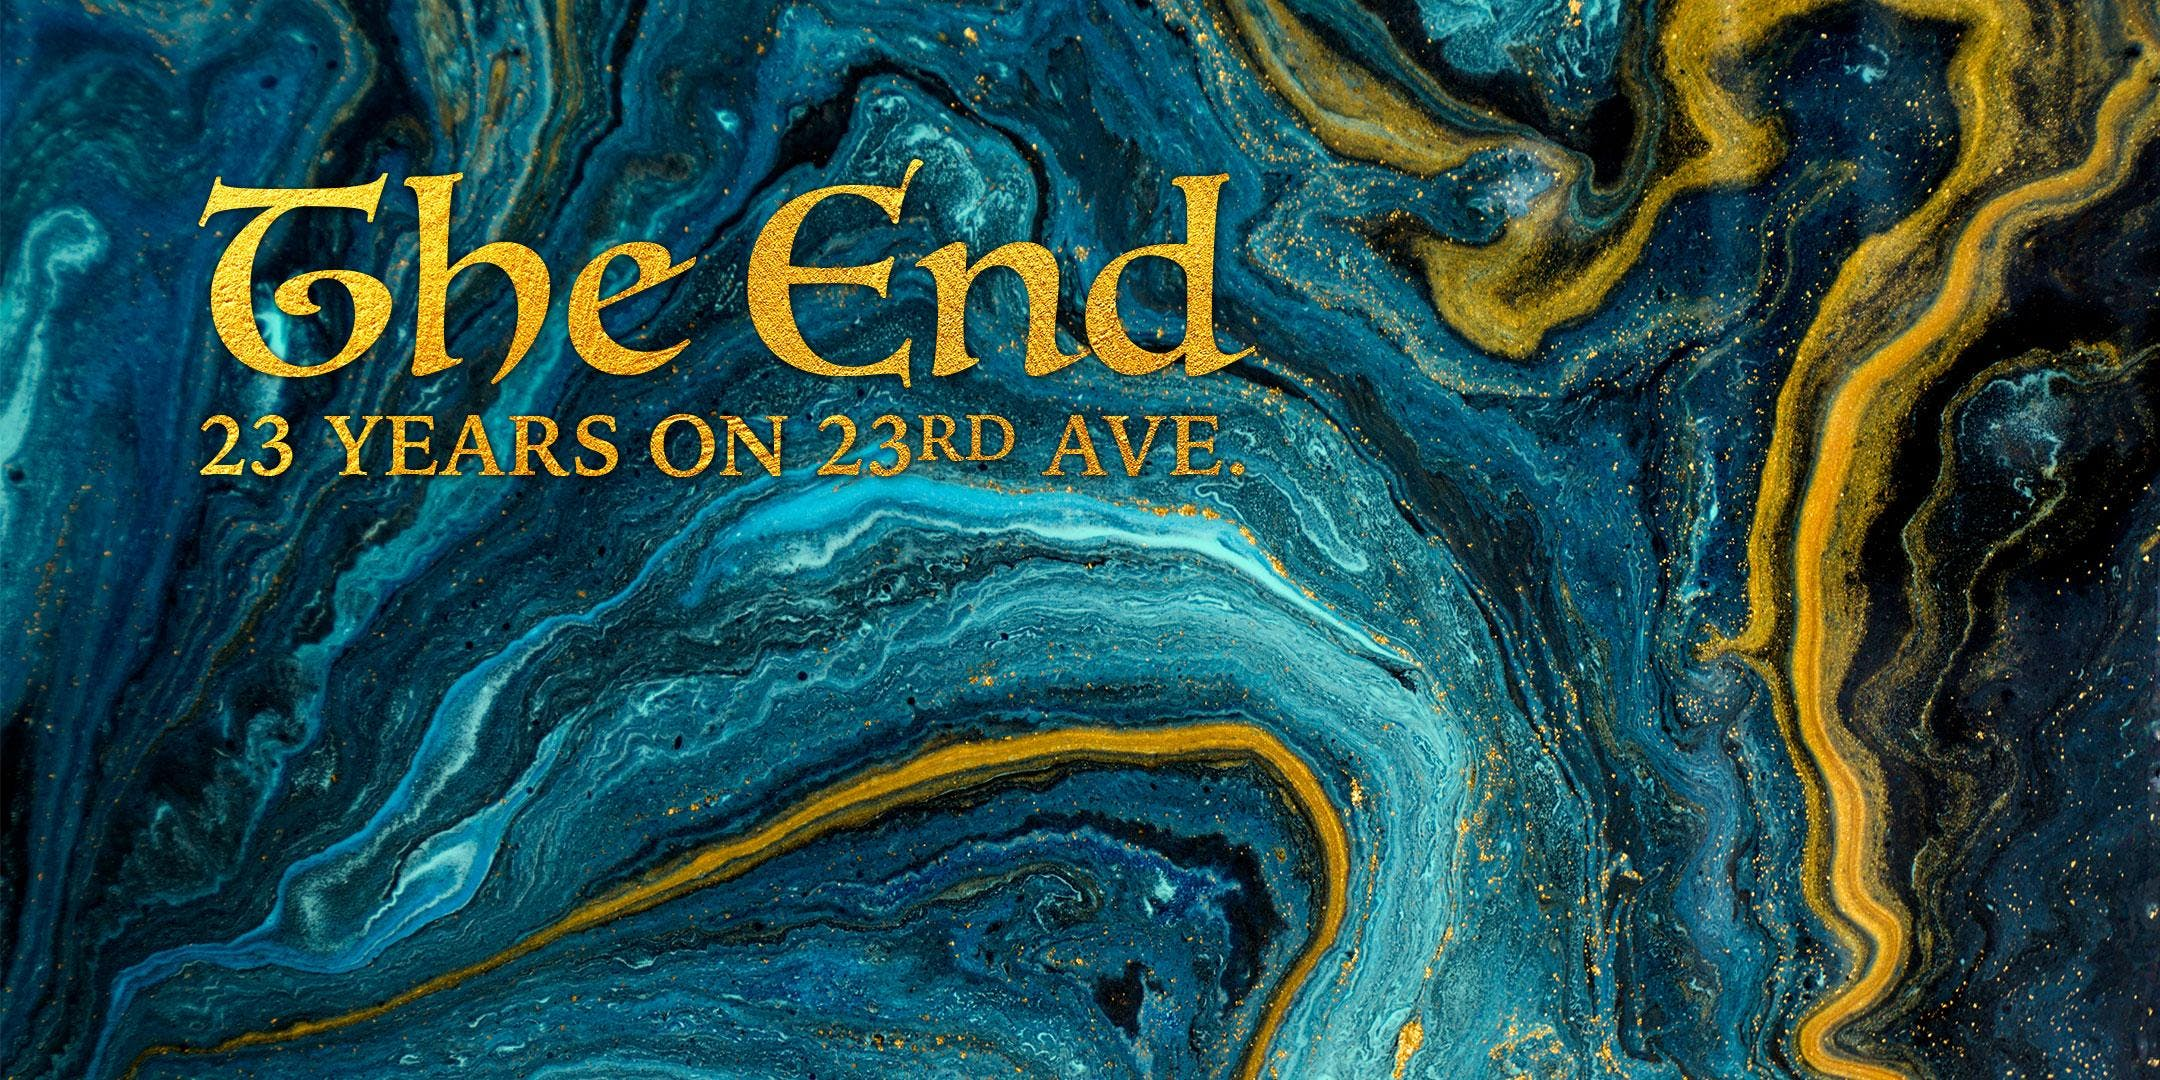 The End: 23 years on 23rd Ave